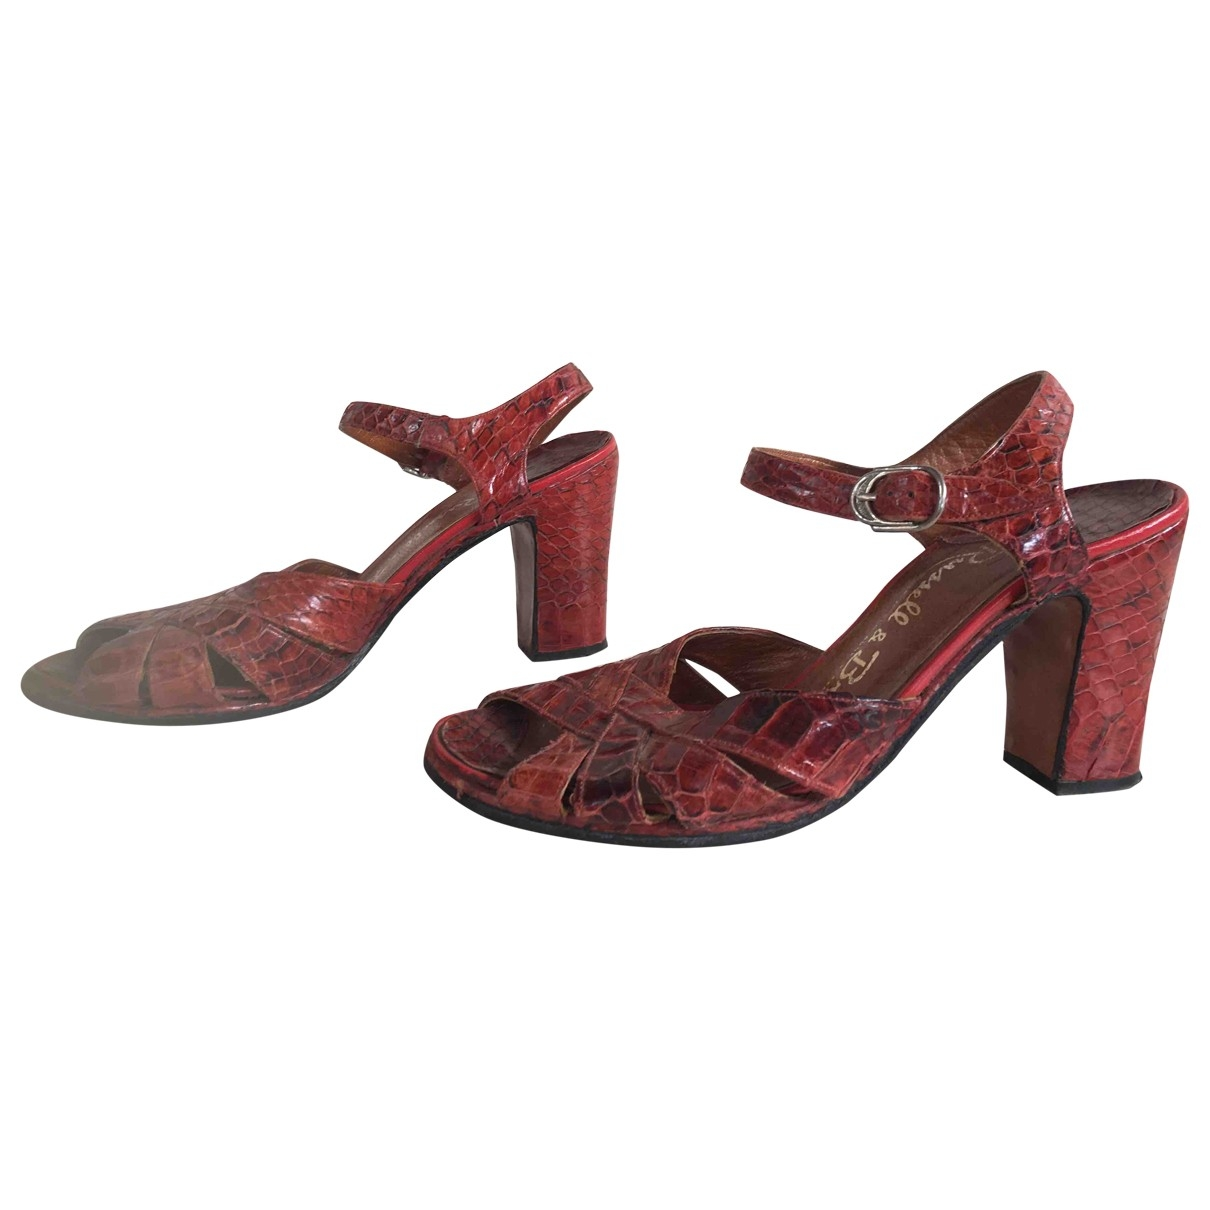 Russell & Bromley \N Orange Leather Sandals for Women 37 EU